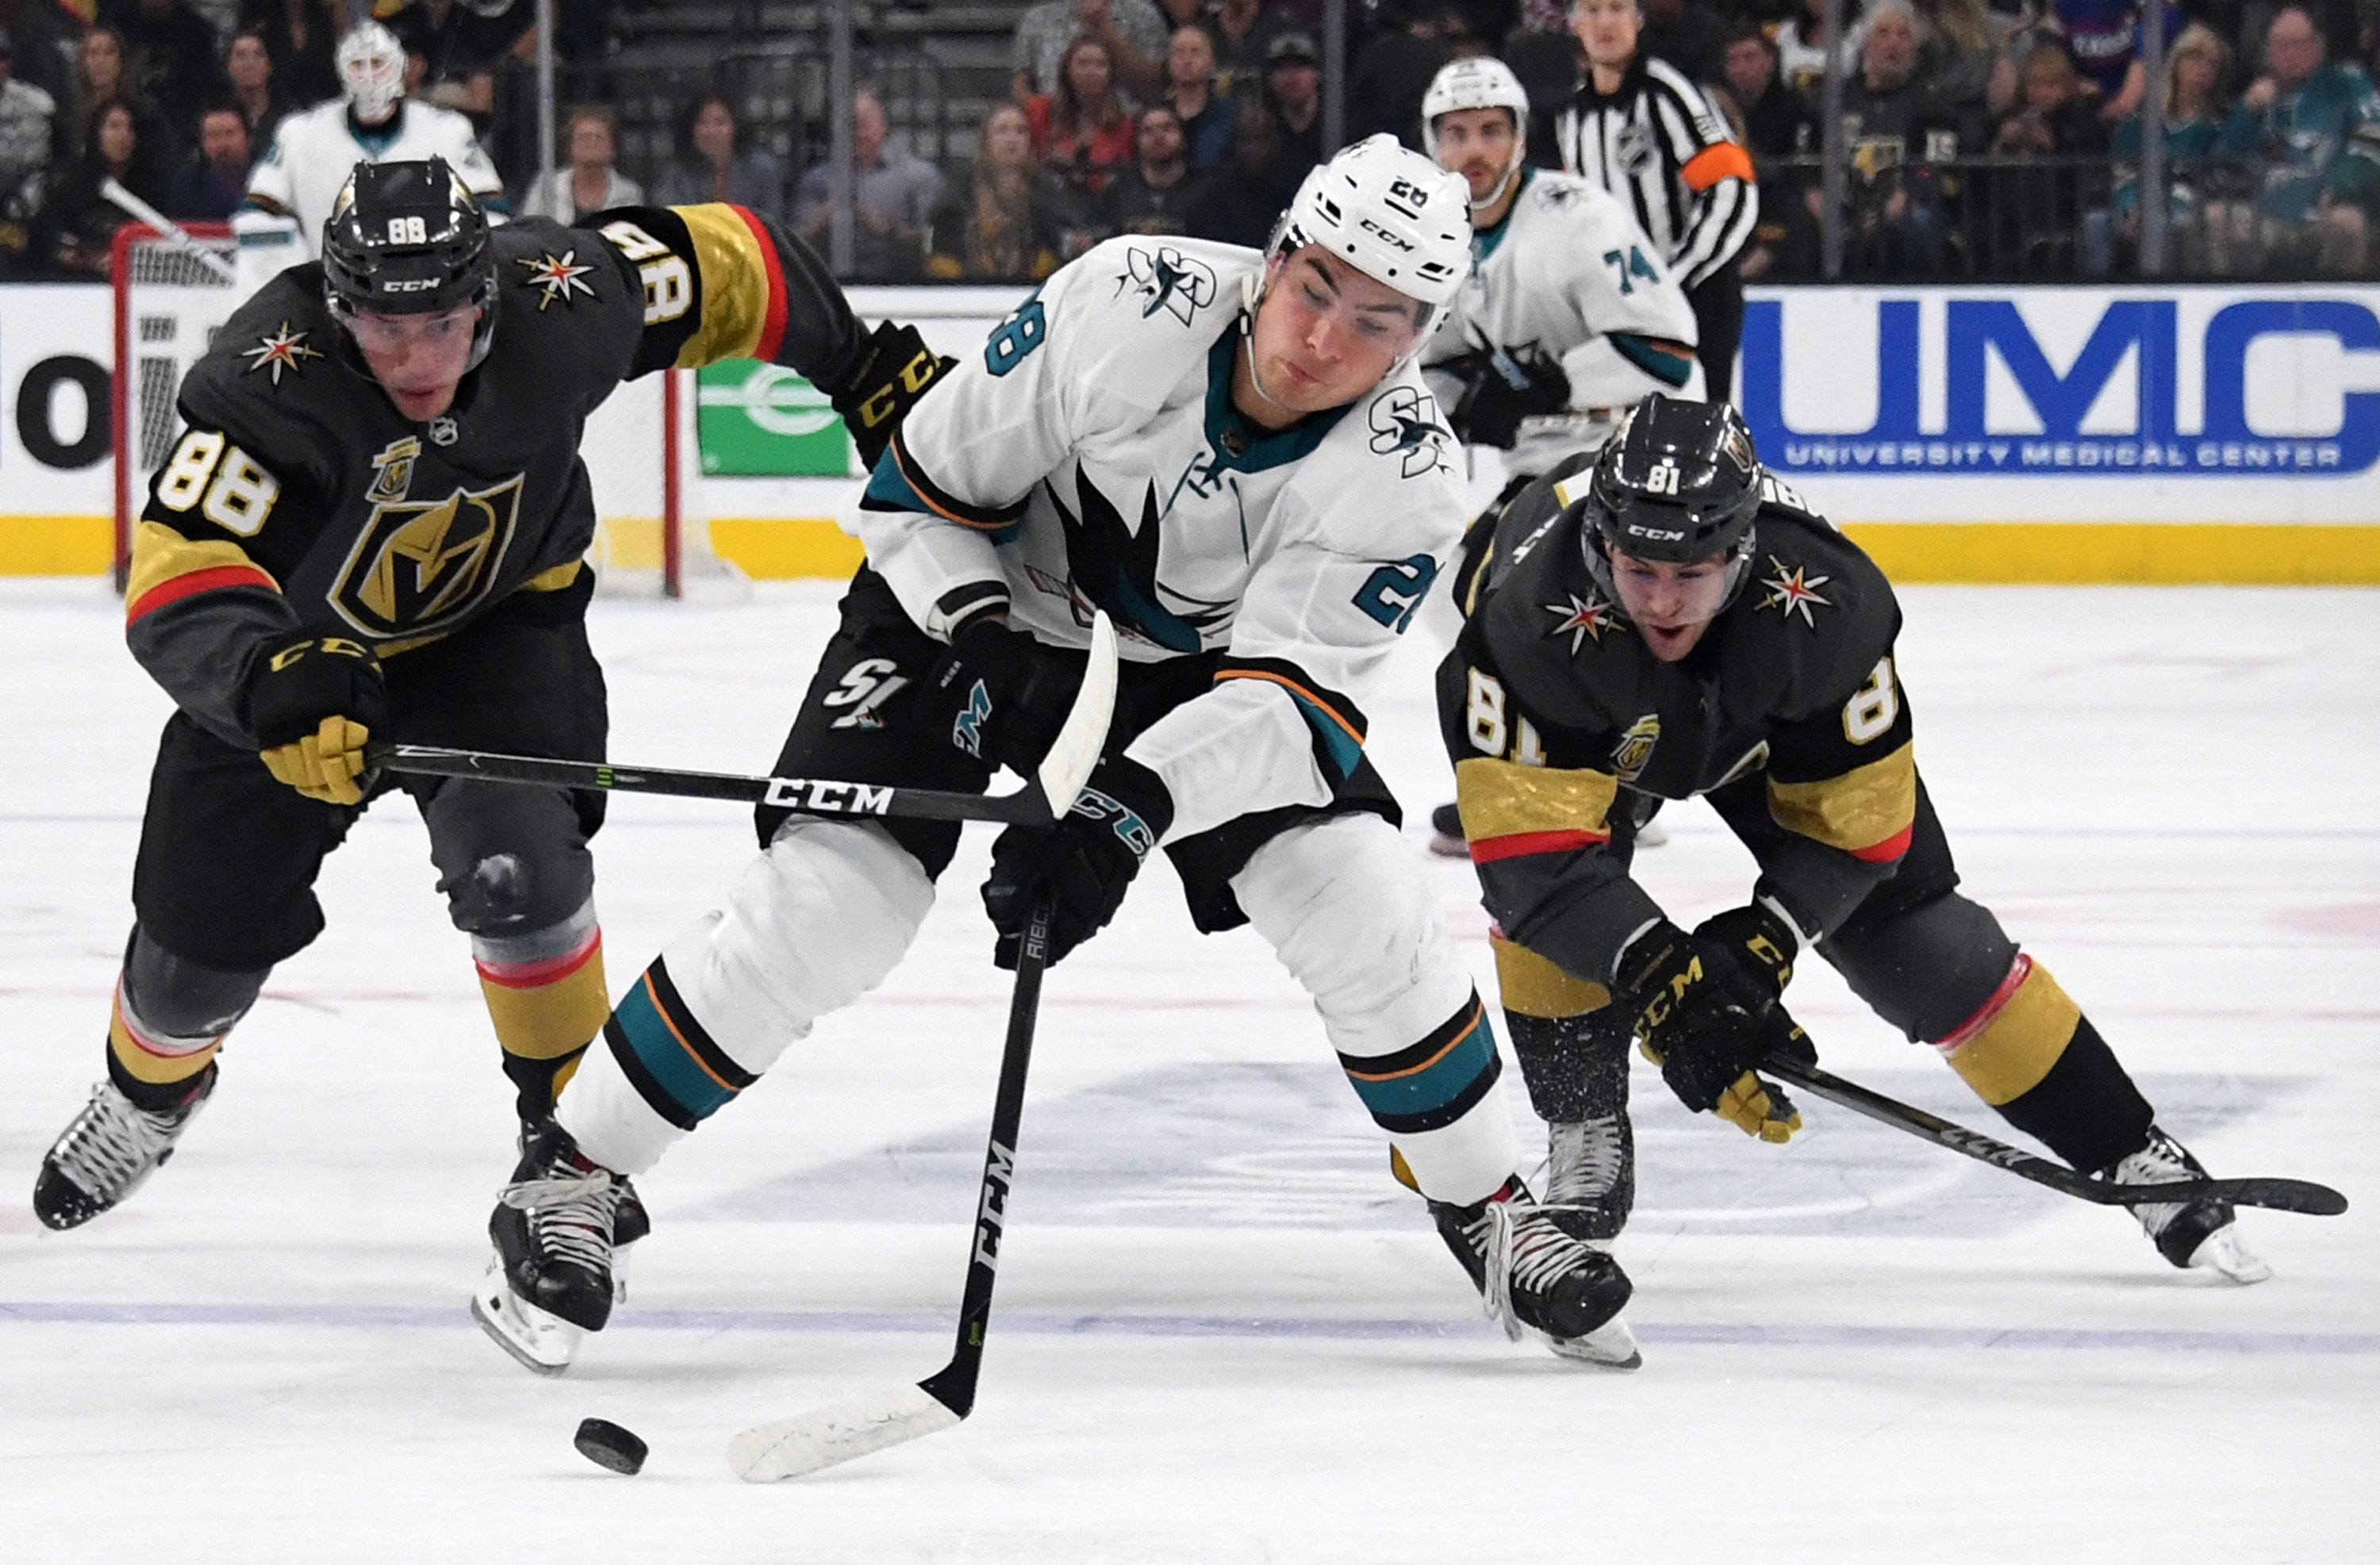 LAS VEGAS, NV - MARCH 31: Timo Meier #28 of the San Jose Sharks skates with the puck under pressure from Nate Schmidt #88 and Jonathan Marchessault #81 of the Vegas Golden Knights in the first period of their game at T-Mobile Arena on March 31, 2018 in La